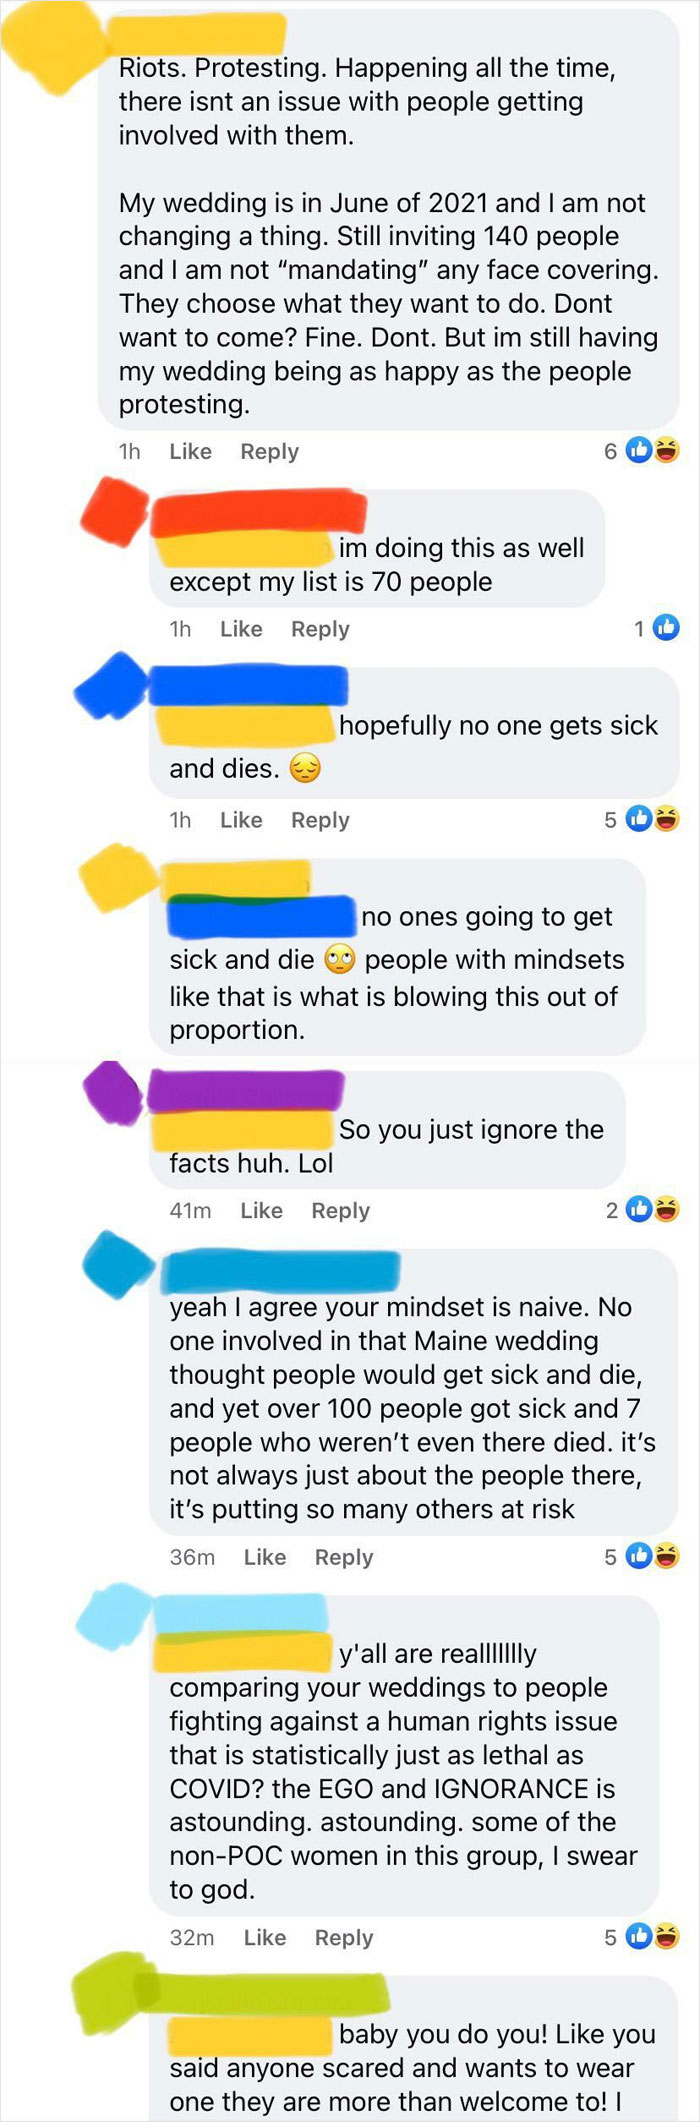 Another Bride Comparing Her Wedding To Protests